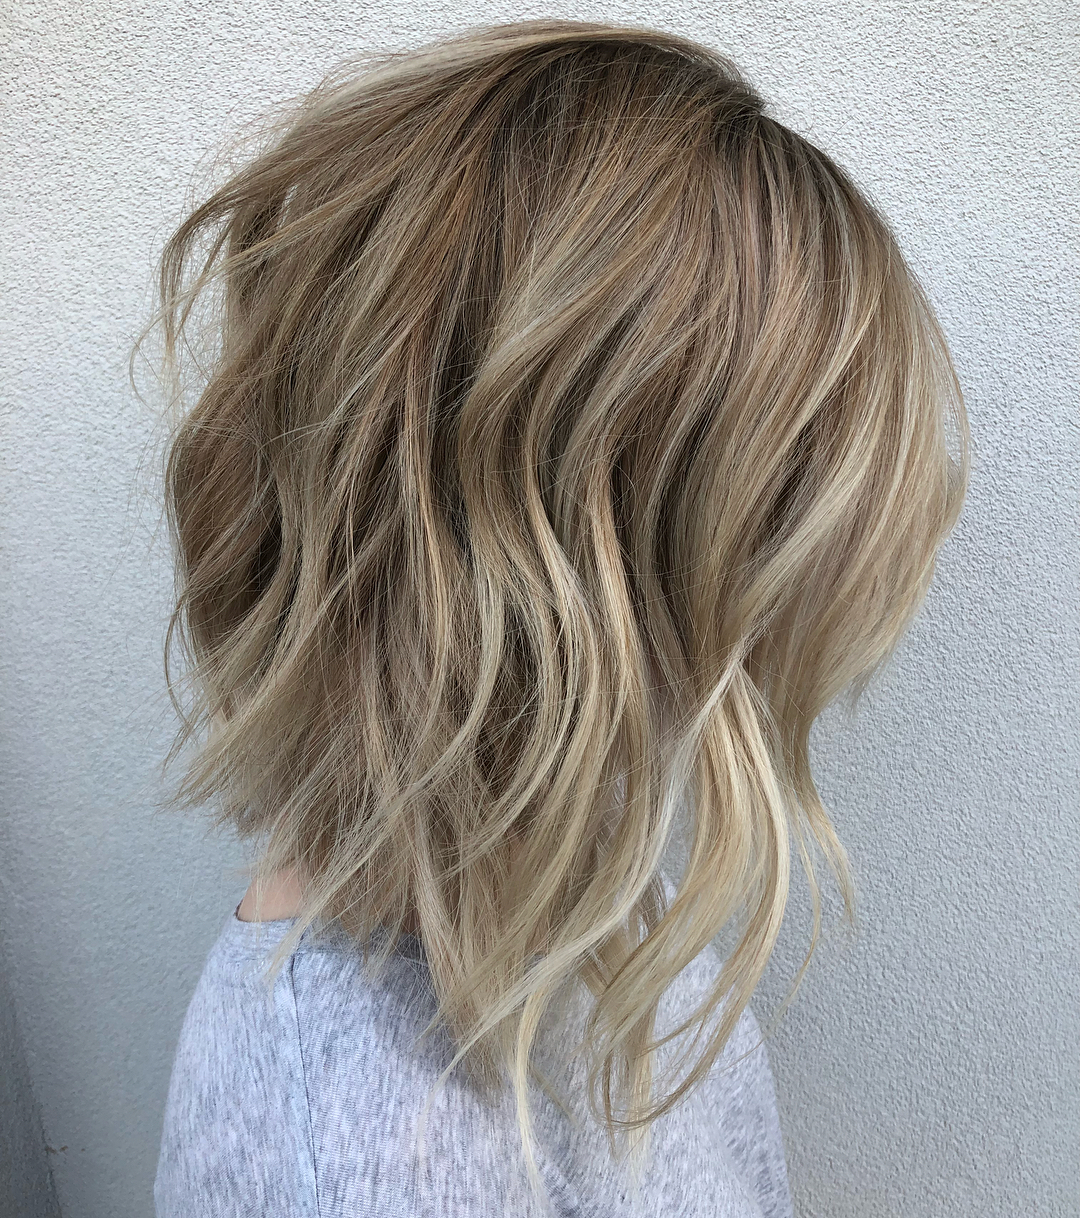 20 Bob Haircuts For Fine Hair To Try In 2019 For Short Bob Hairstyles With Textured Waves (View 3 of 20)